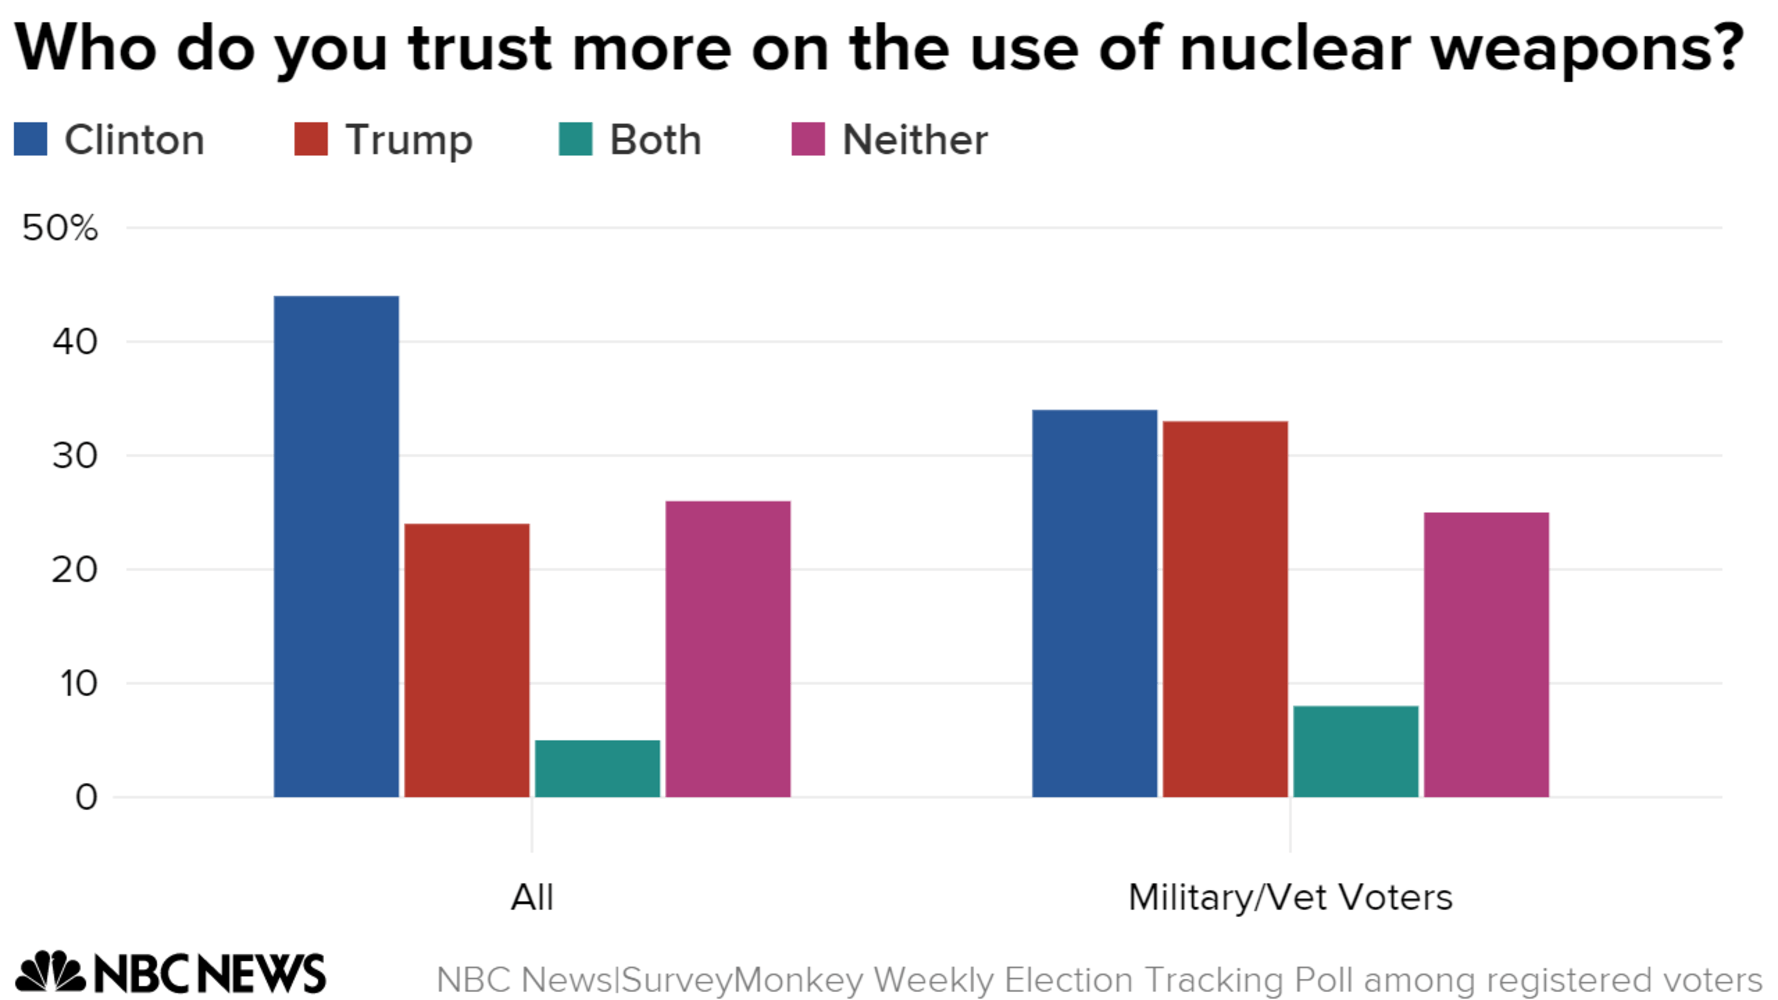 Overall More Voters Would Trust Clinton To Make The Right Decisions About The Use Of Nuclear Weapons 44 Percent But A Quarter Would Not Trust Either Her